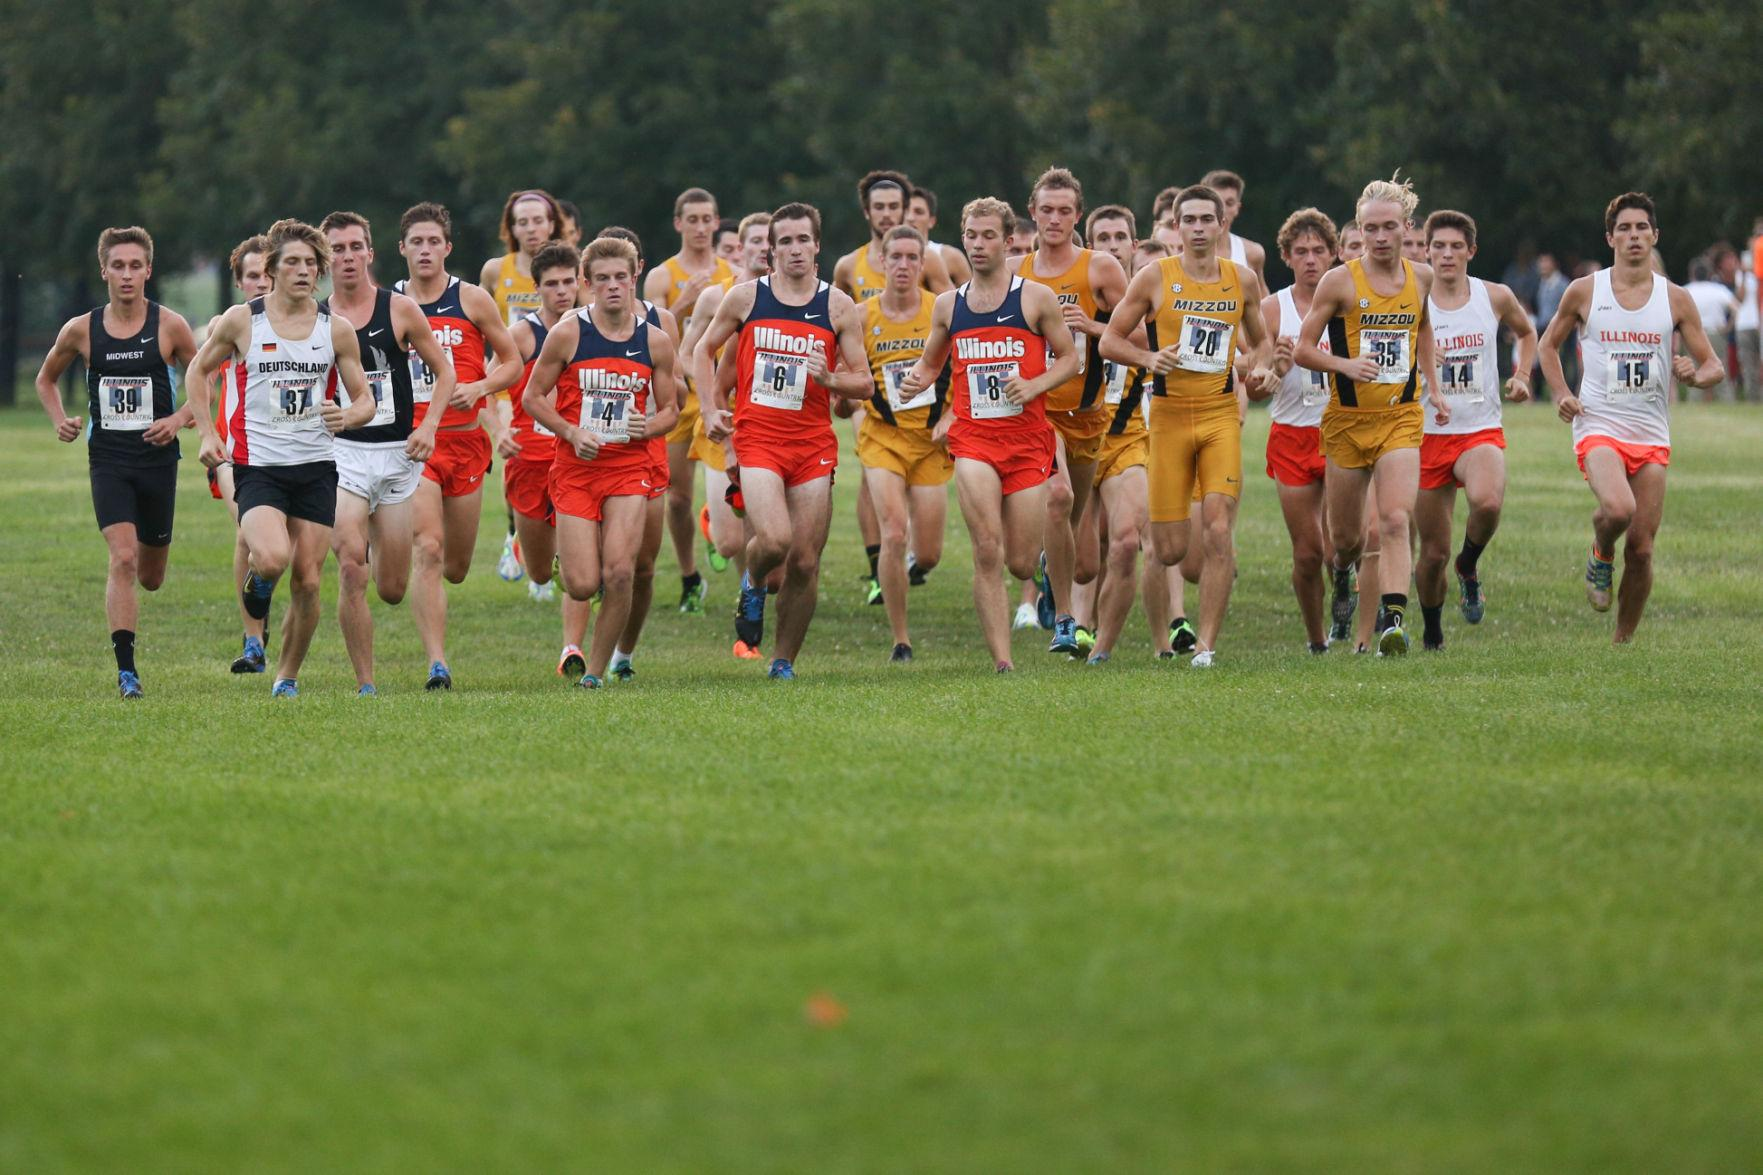 The Fighting Illini men's track and cross-country team start their race during the Illini Challenge at the UI Arboretum on Aug. 29. After a three week break, the Illini will head to the Roy Griak Invite in Minnesota on Saturday.